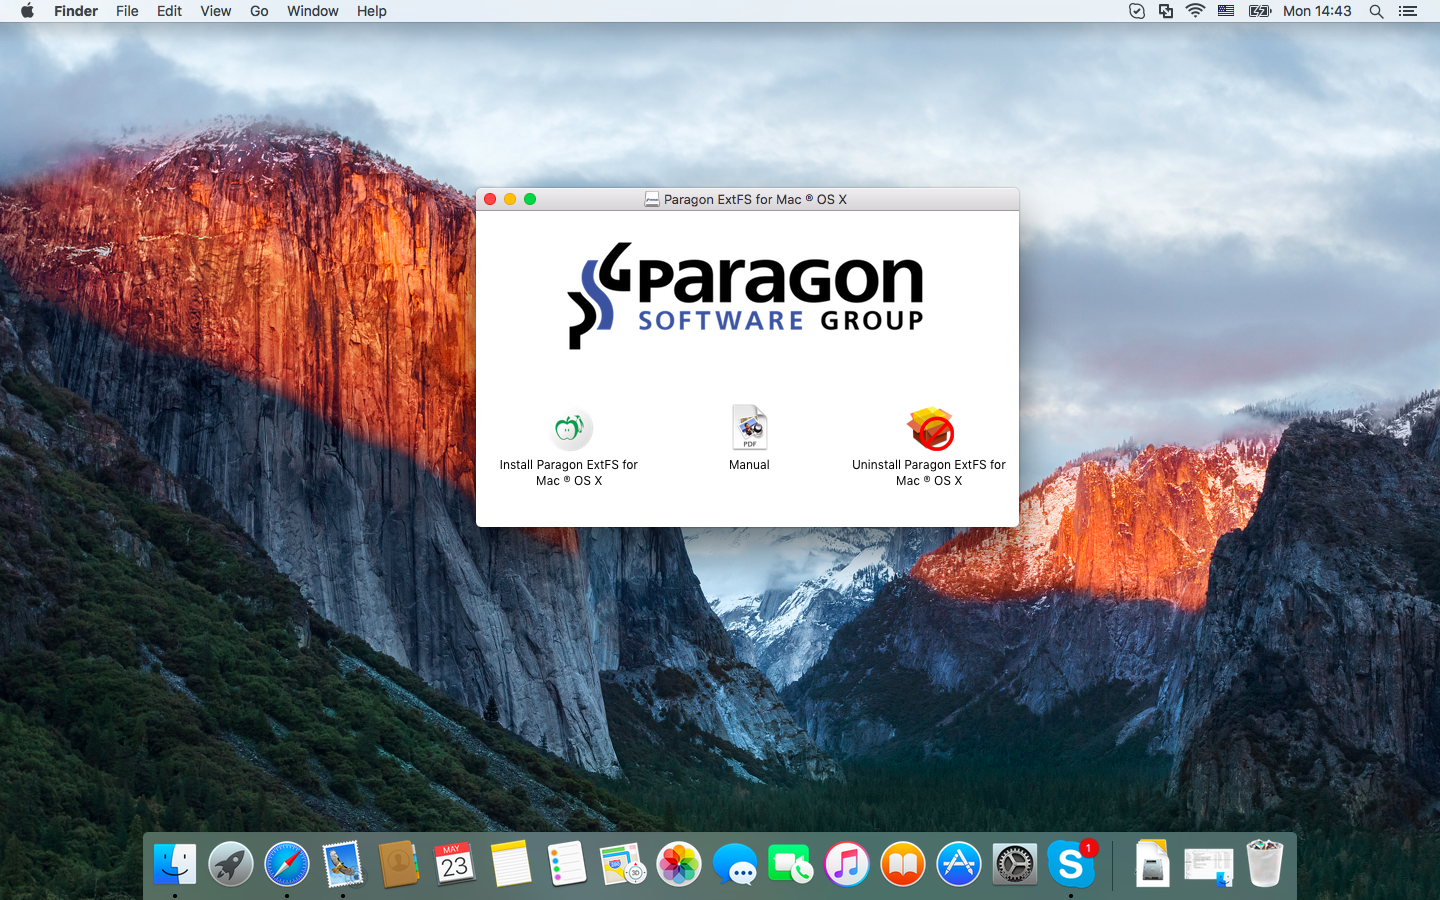 Hard Drive Software, Paragon ExtFS for Mac 11 Screenshot